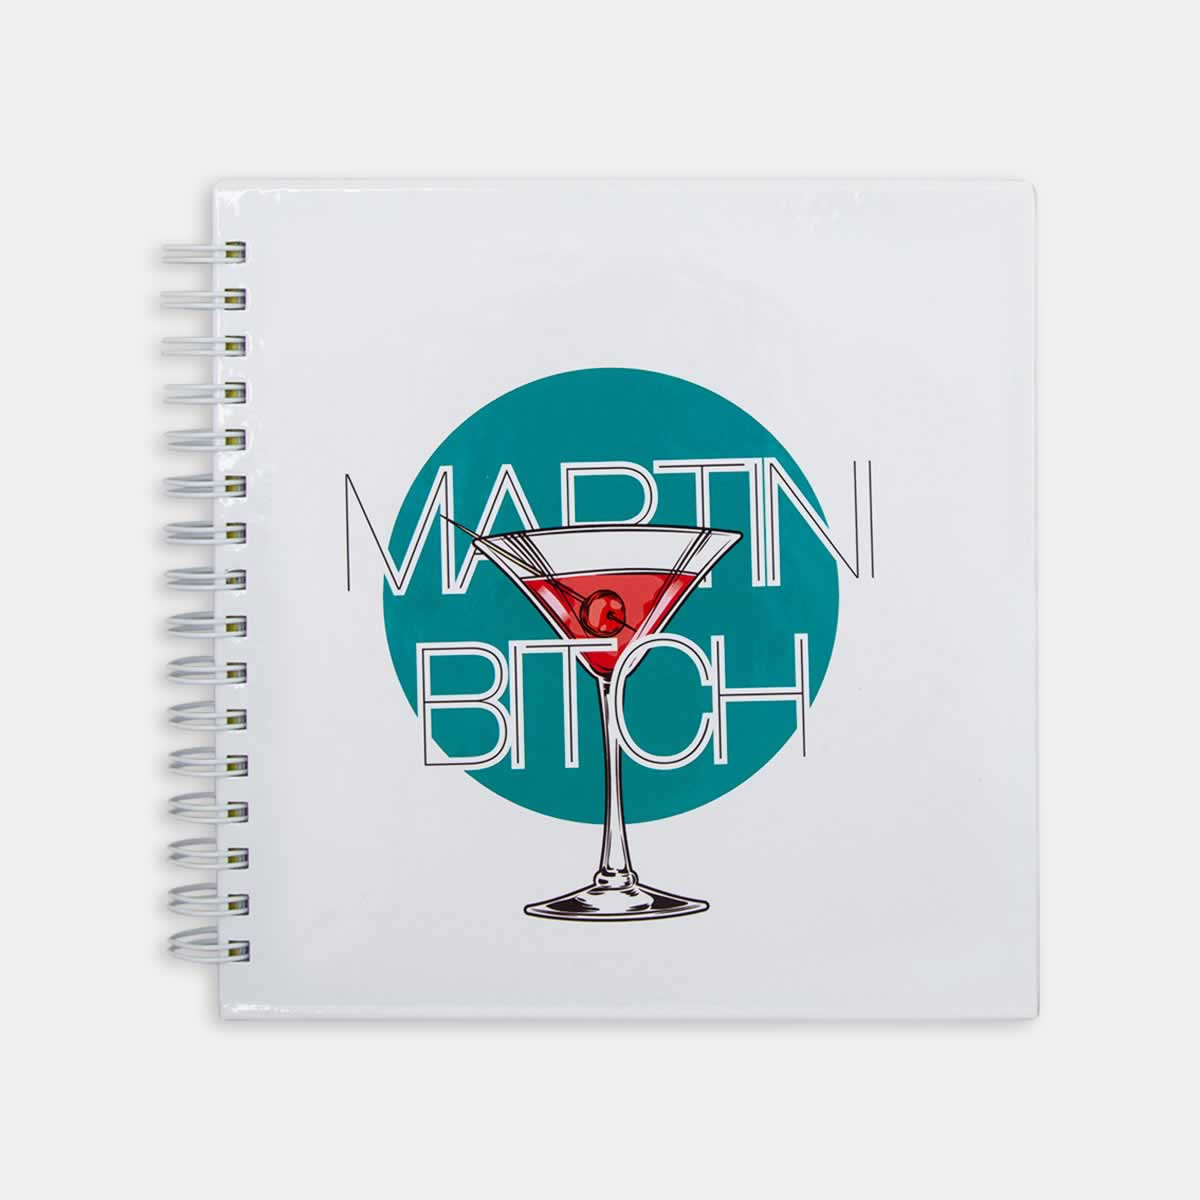 Hipster Series Notebooks - Icons: Martini Bitch